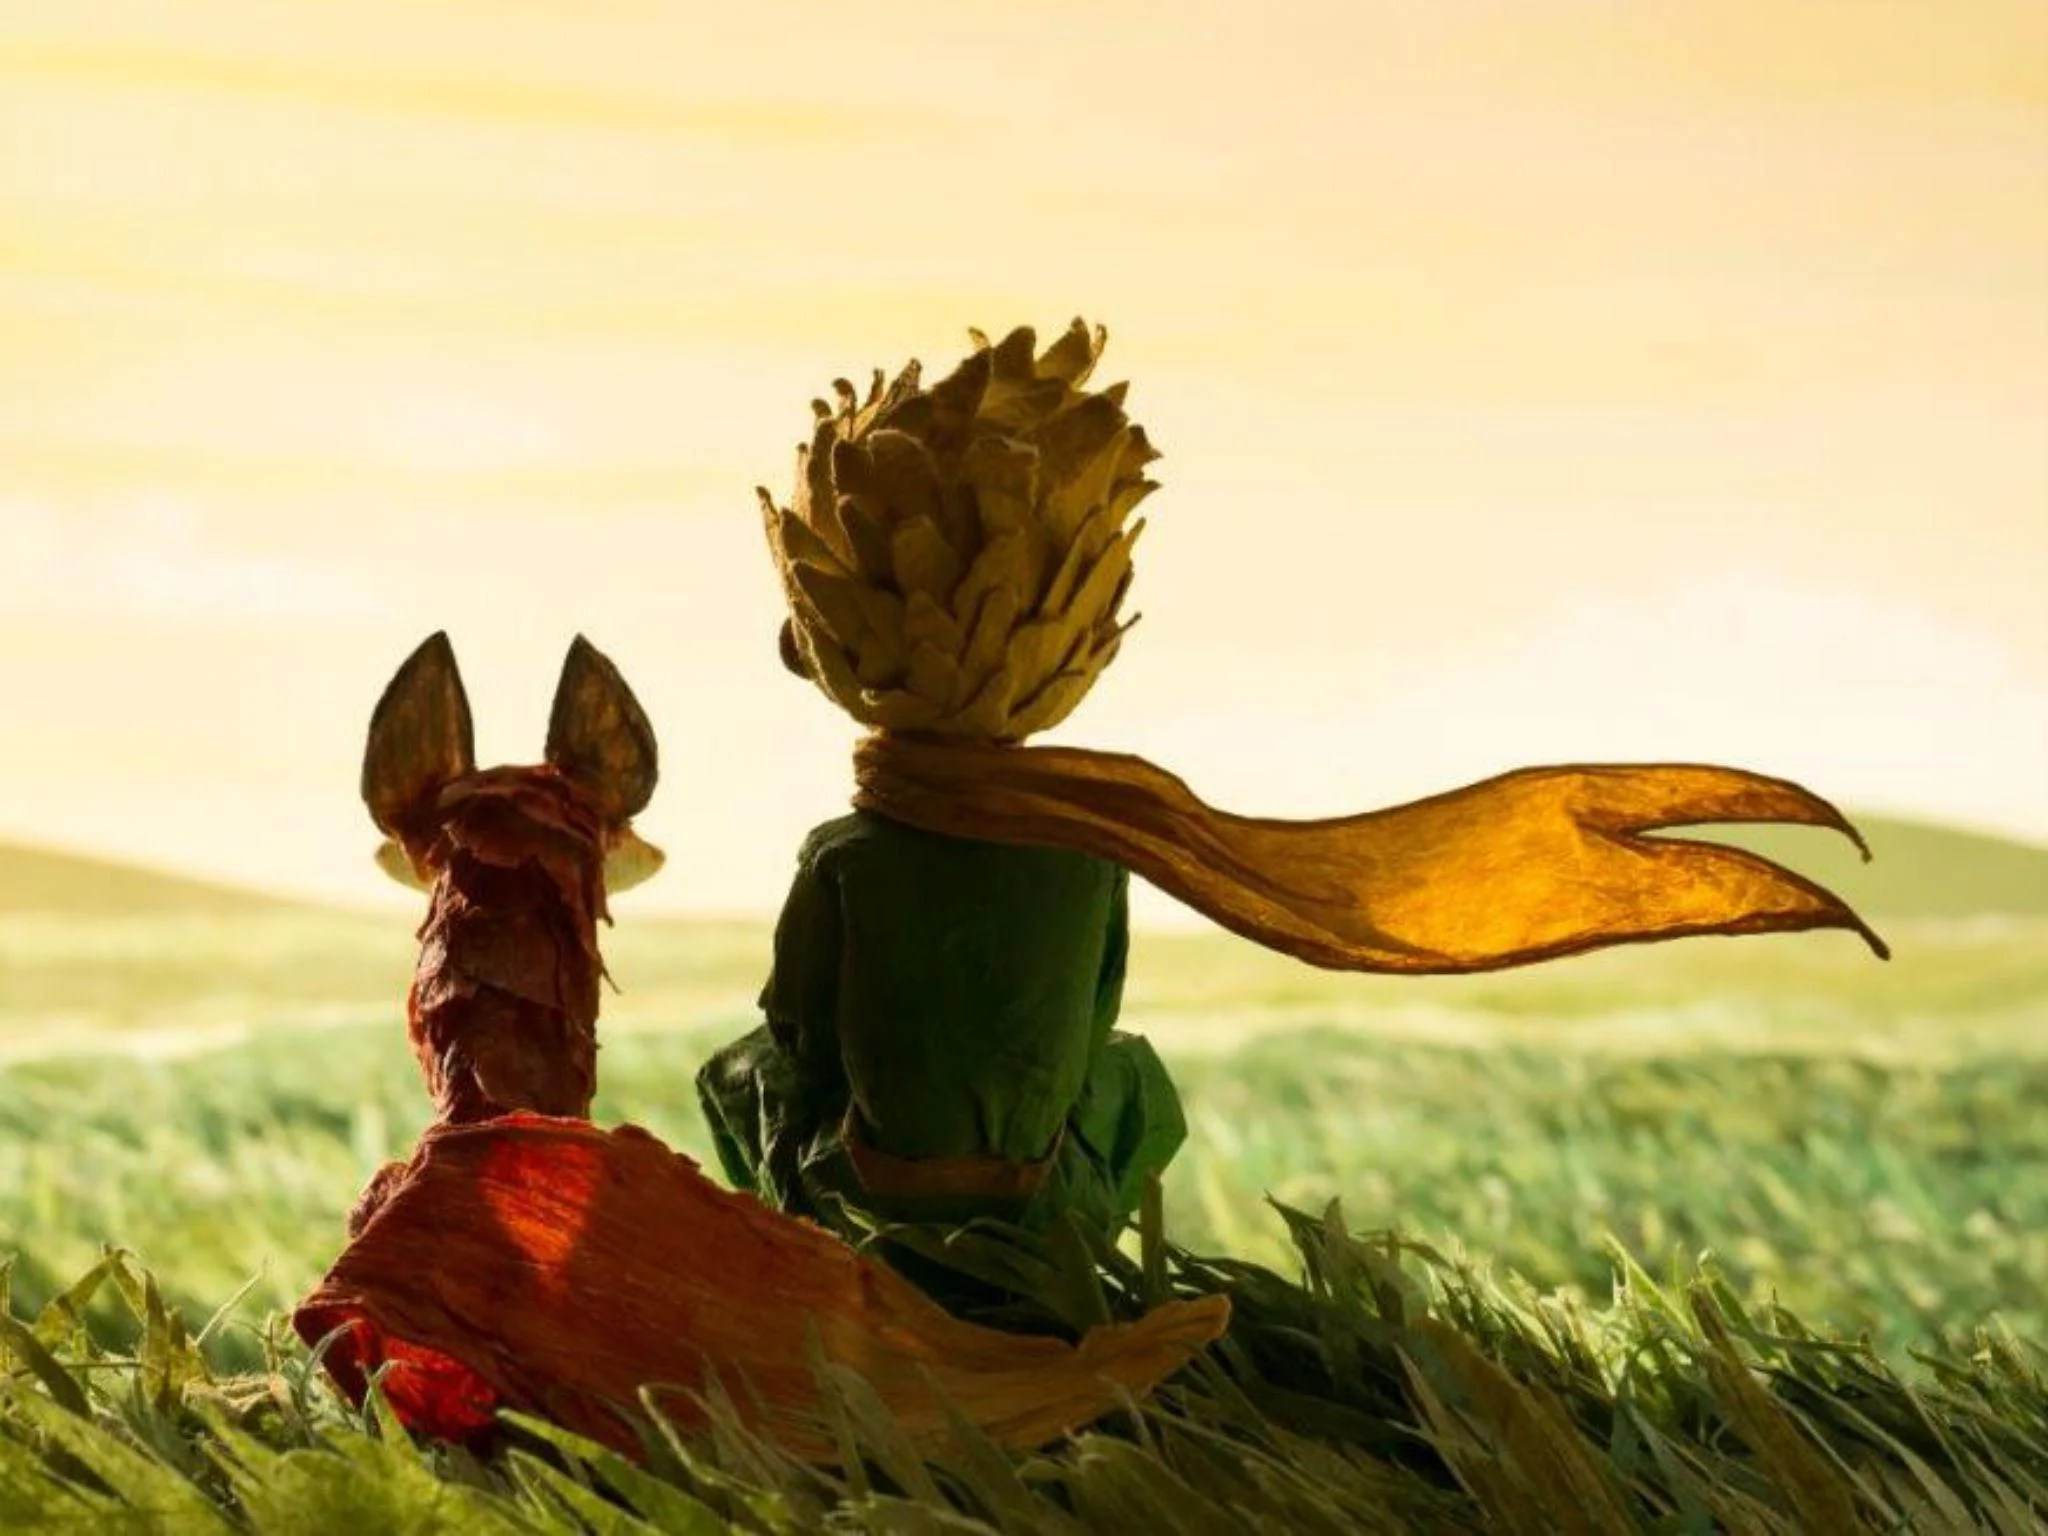 Netflix S The Little Prince Is The Animated Film We All